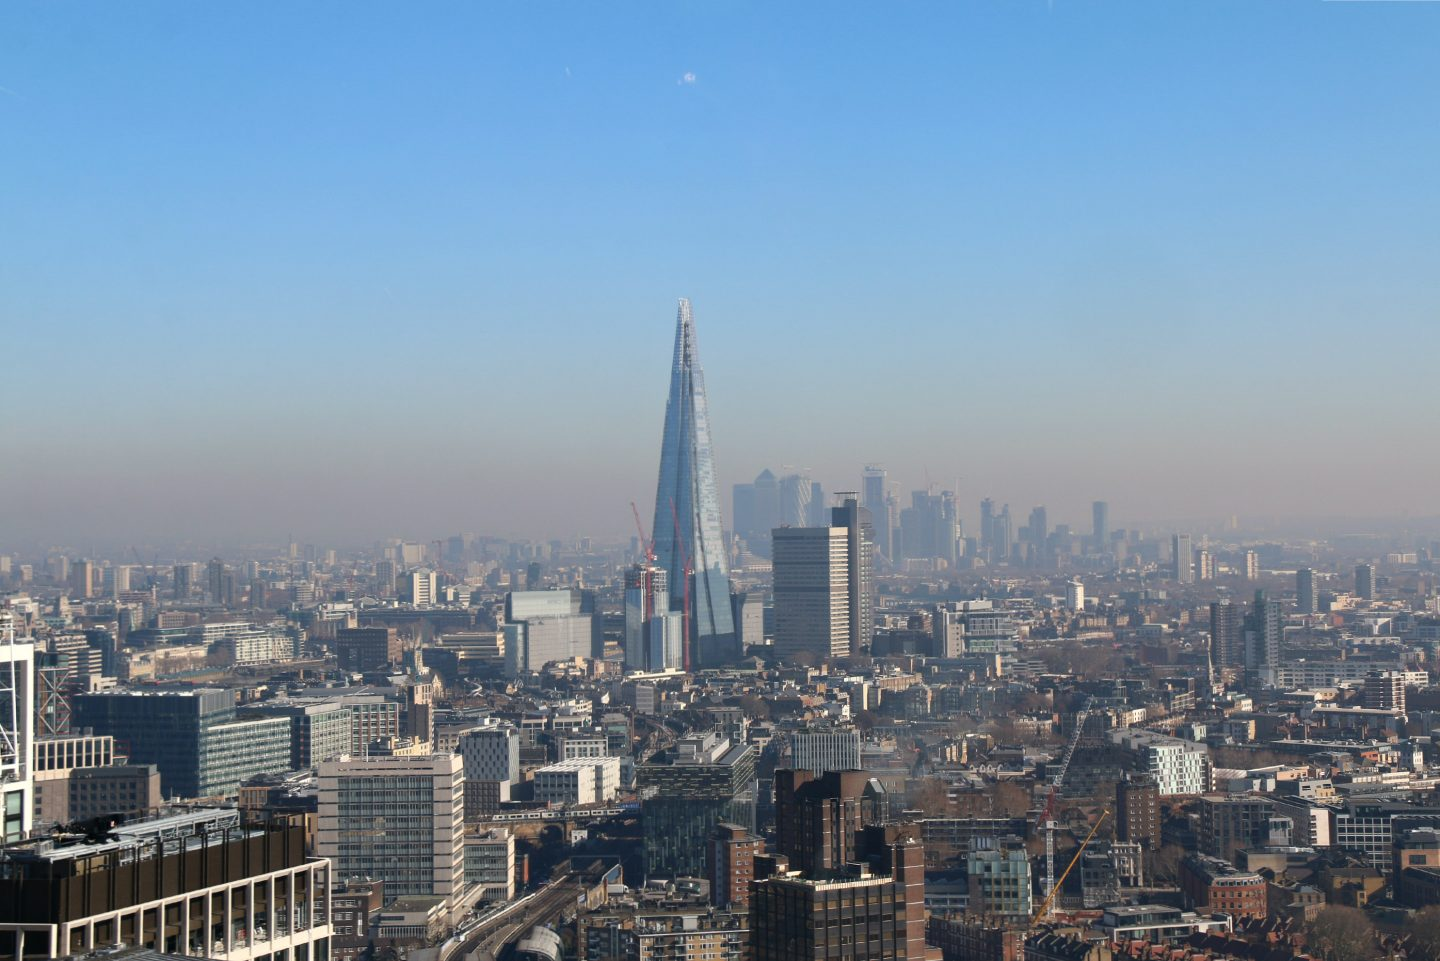 View from the top of the London Eye - The Shard